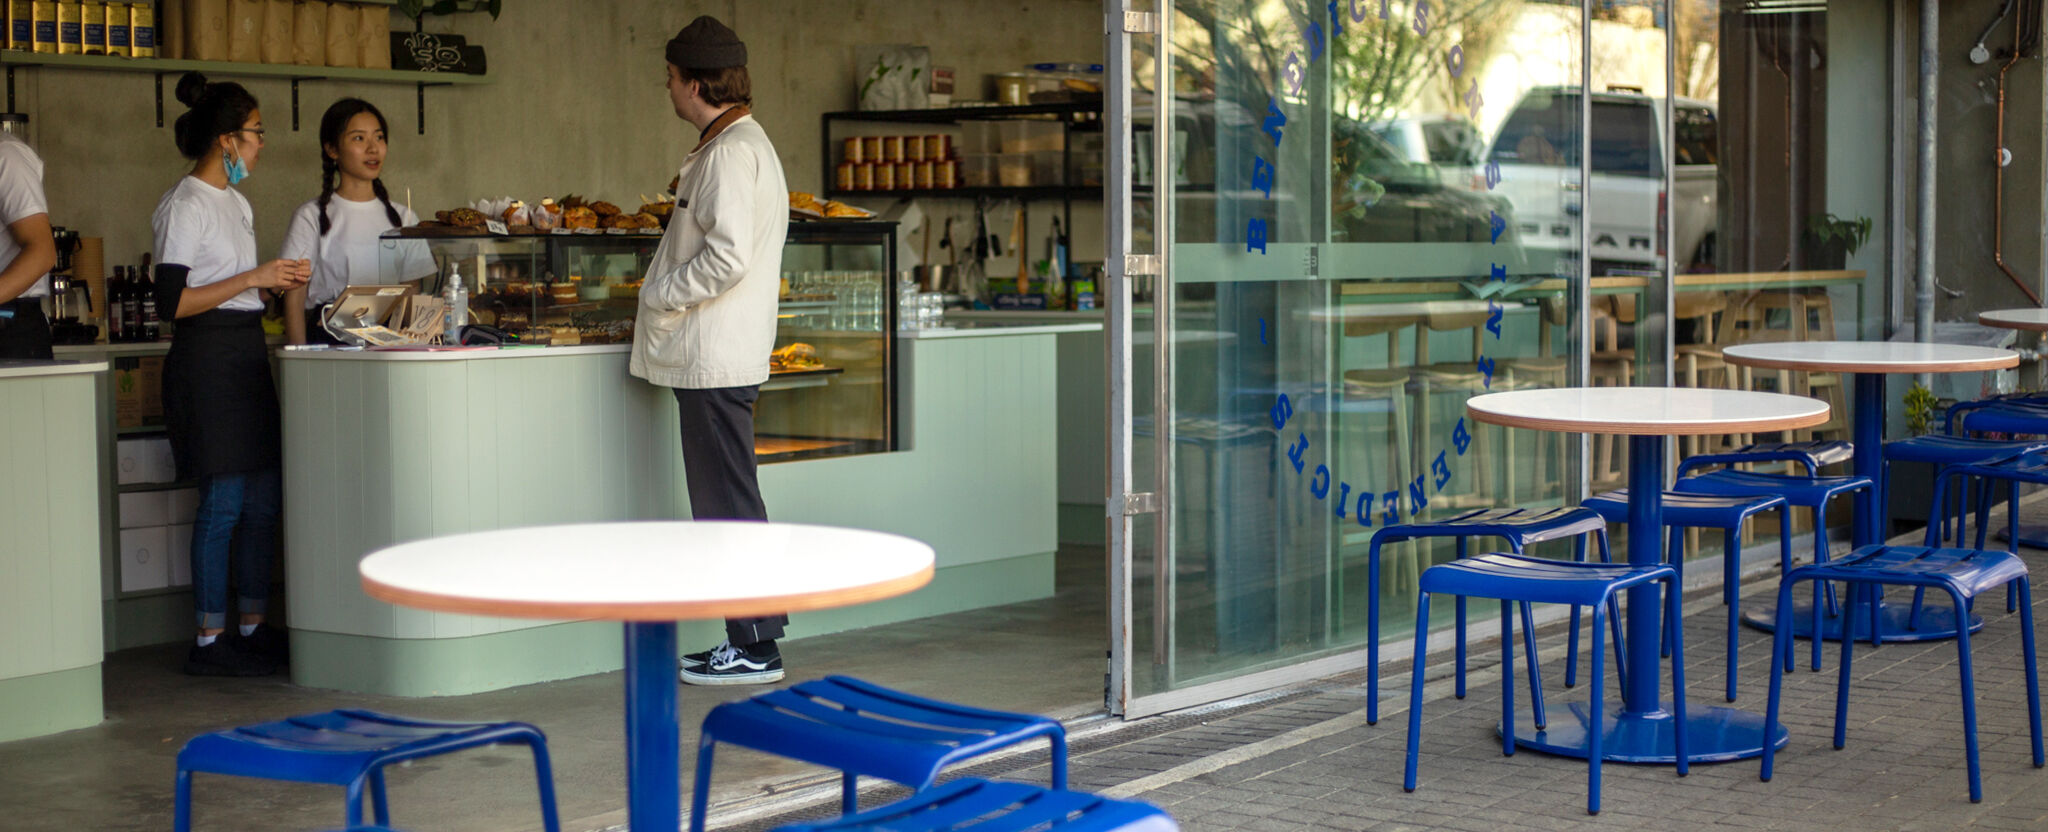 Outdoor seating with a cheerful vibe at Benedict's Cafe in Eden Terrace